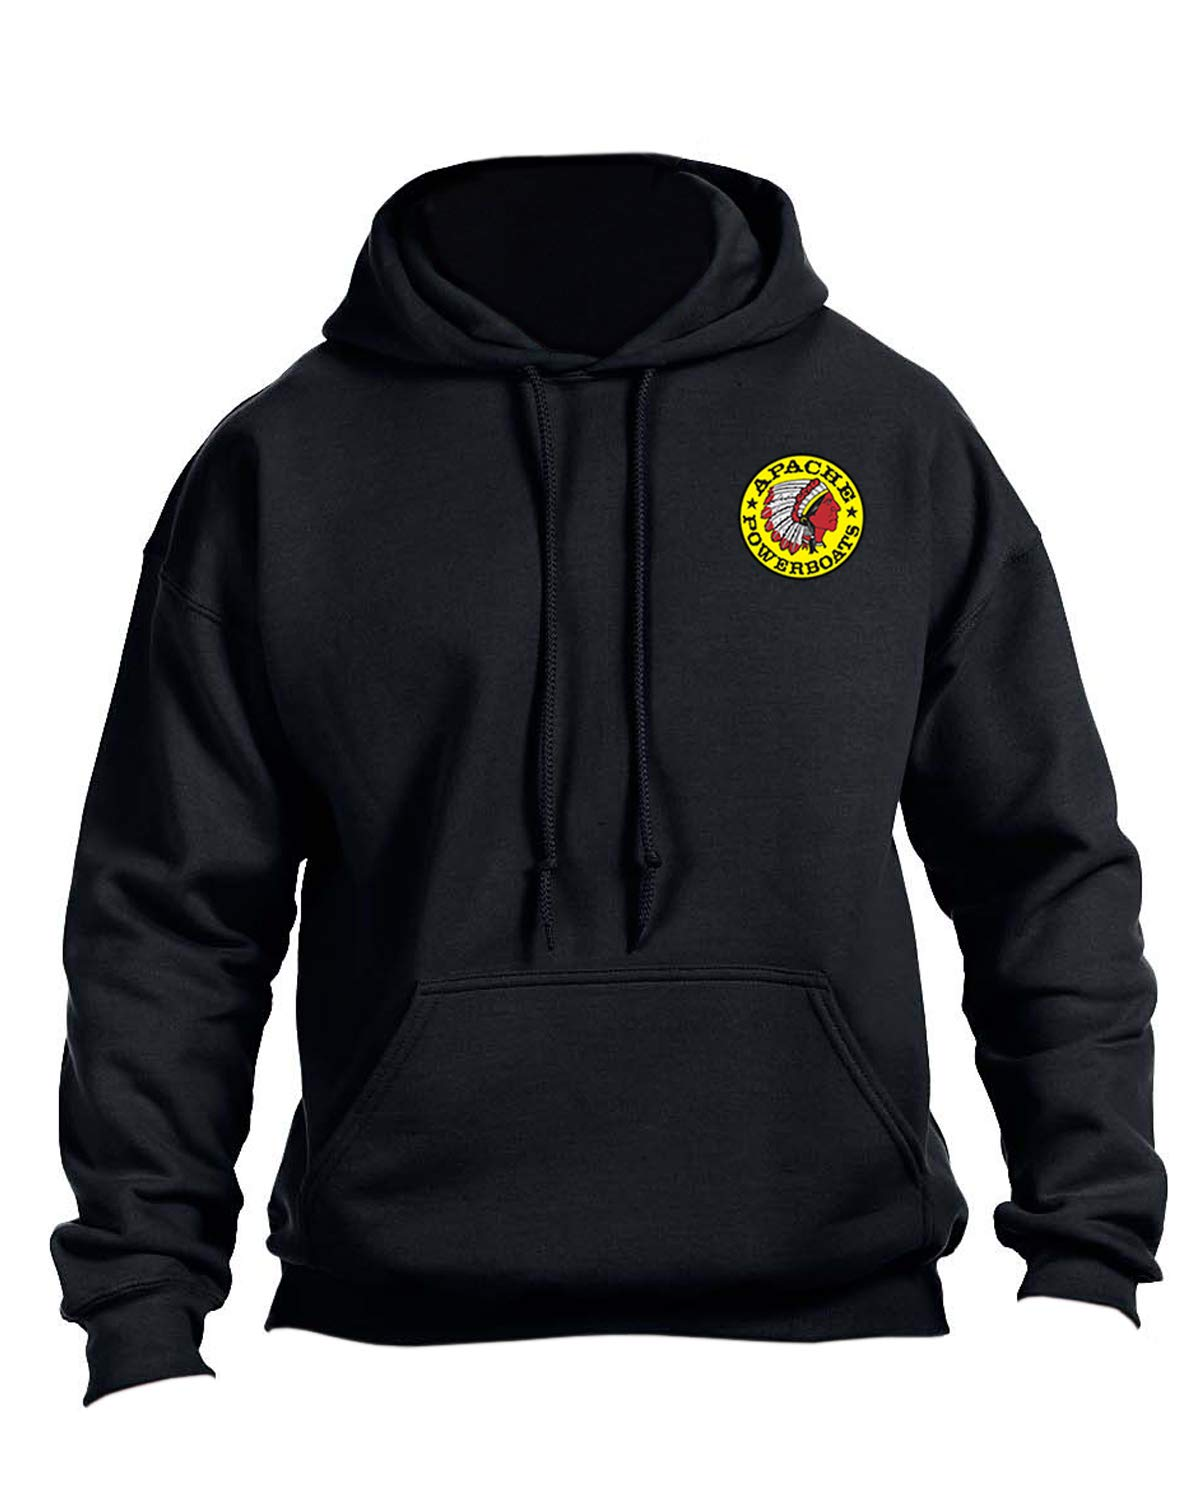 Apache Powerboats Offshore Champion Hooded Sweatshirt (XX-Large, Black) by Apache Powerboats